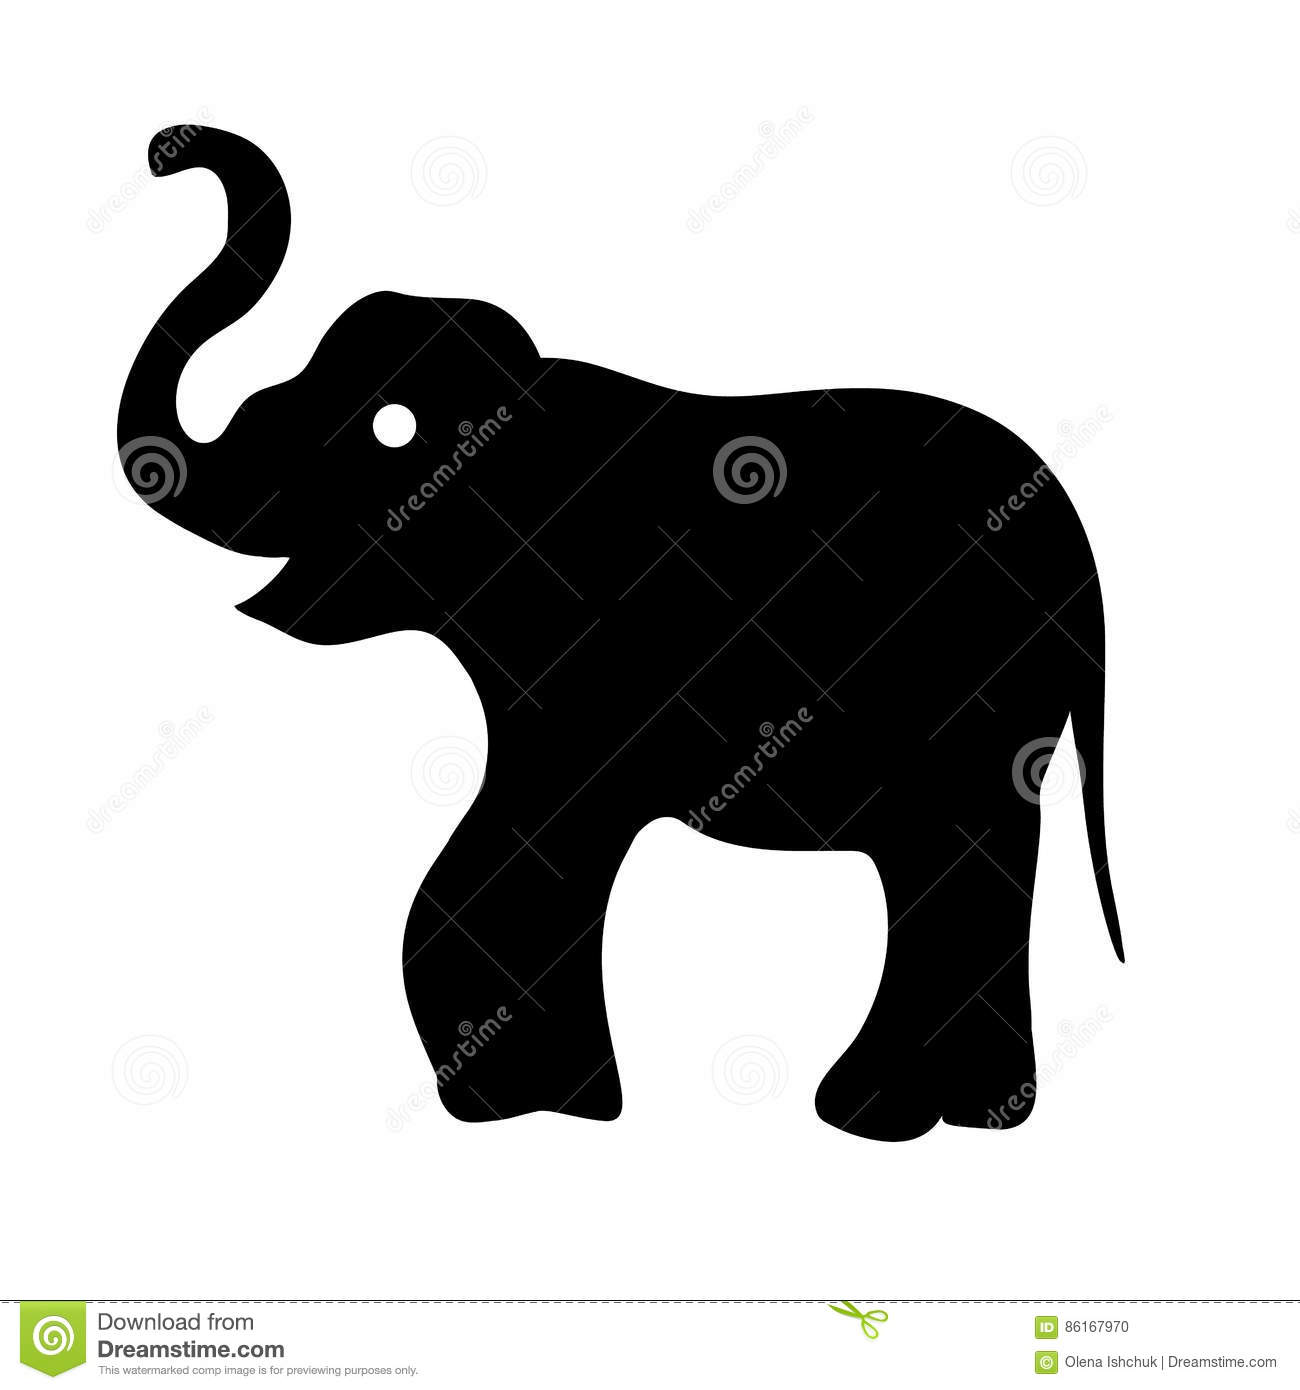 Dessin d 39 ensemble d 39 un noir d 39 l phant illustration de vecteur illustration du mignon - Dessin d un elephant ...